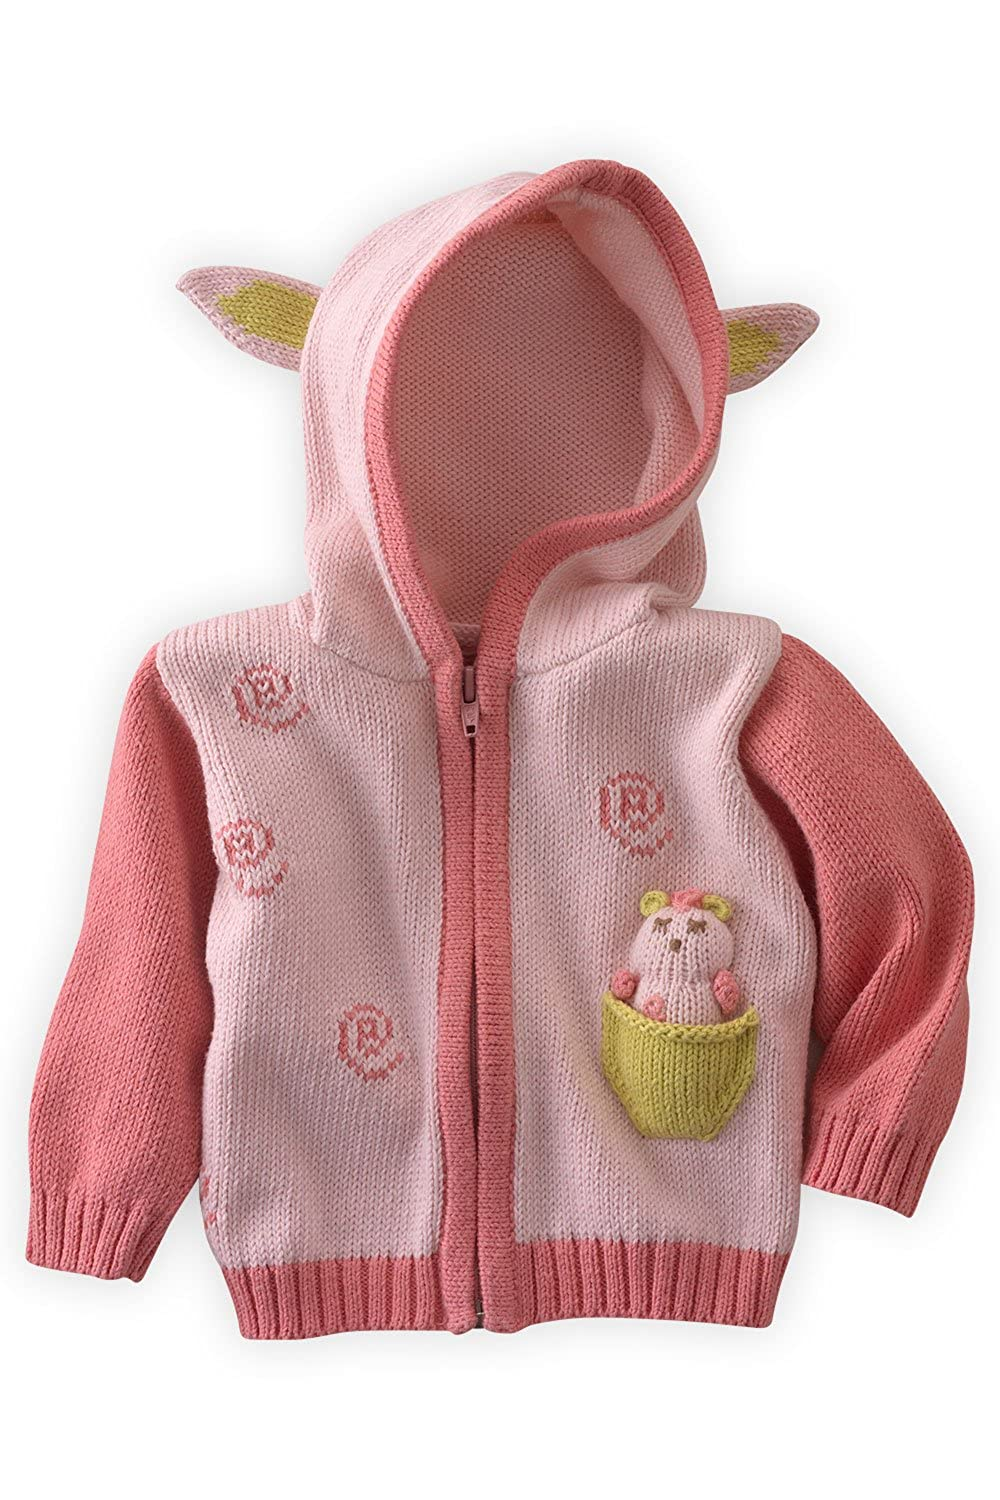 Cutie The Lamb Joobles Fair Trade Organic Baby Cardigan Sweater